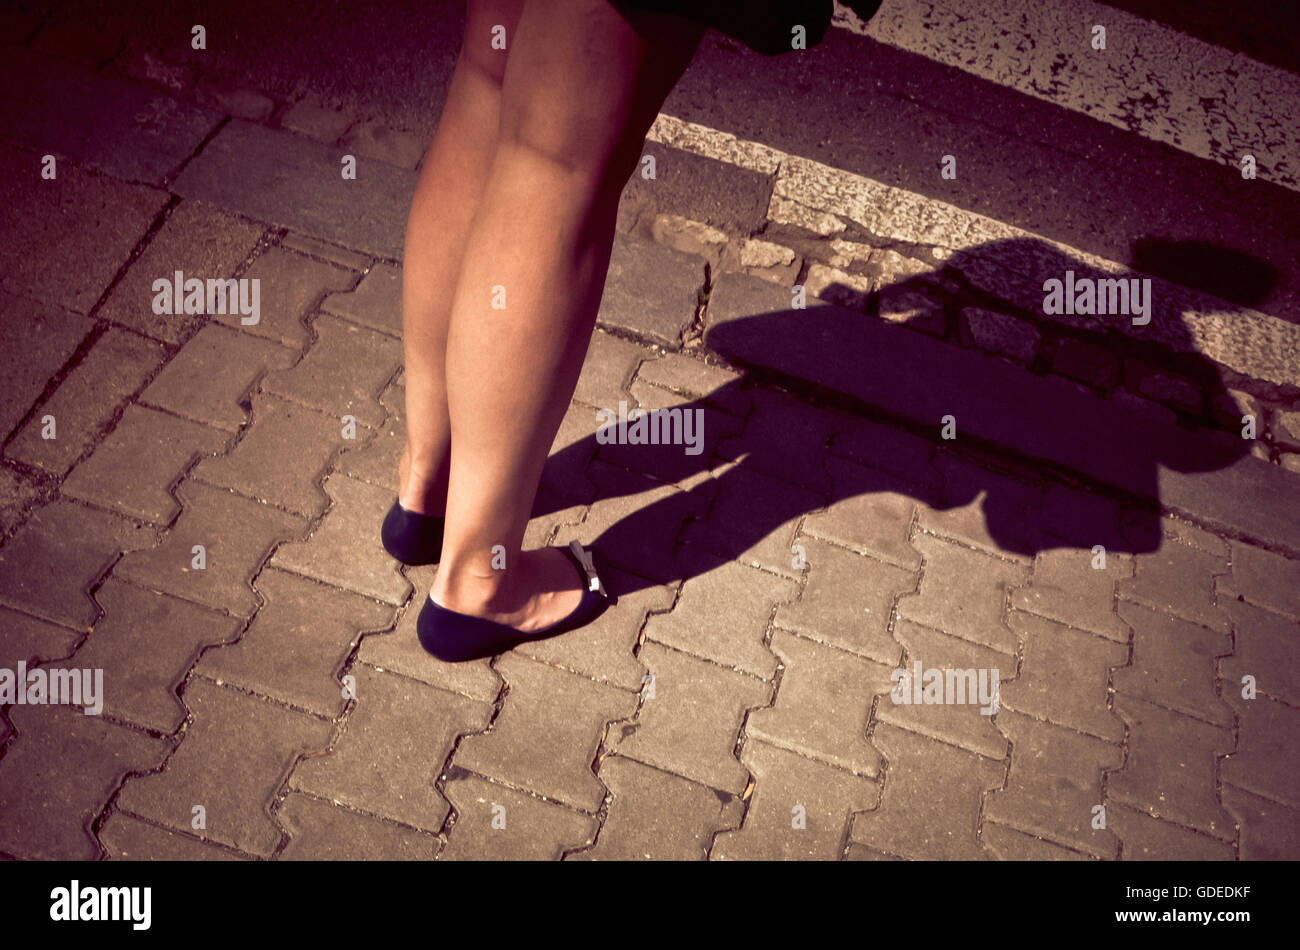 legs of an unknown woman standing in the street, her full figure shadow projected - Stock Image